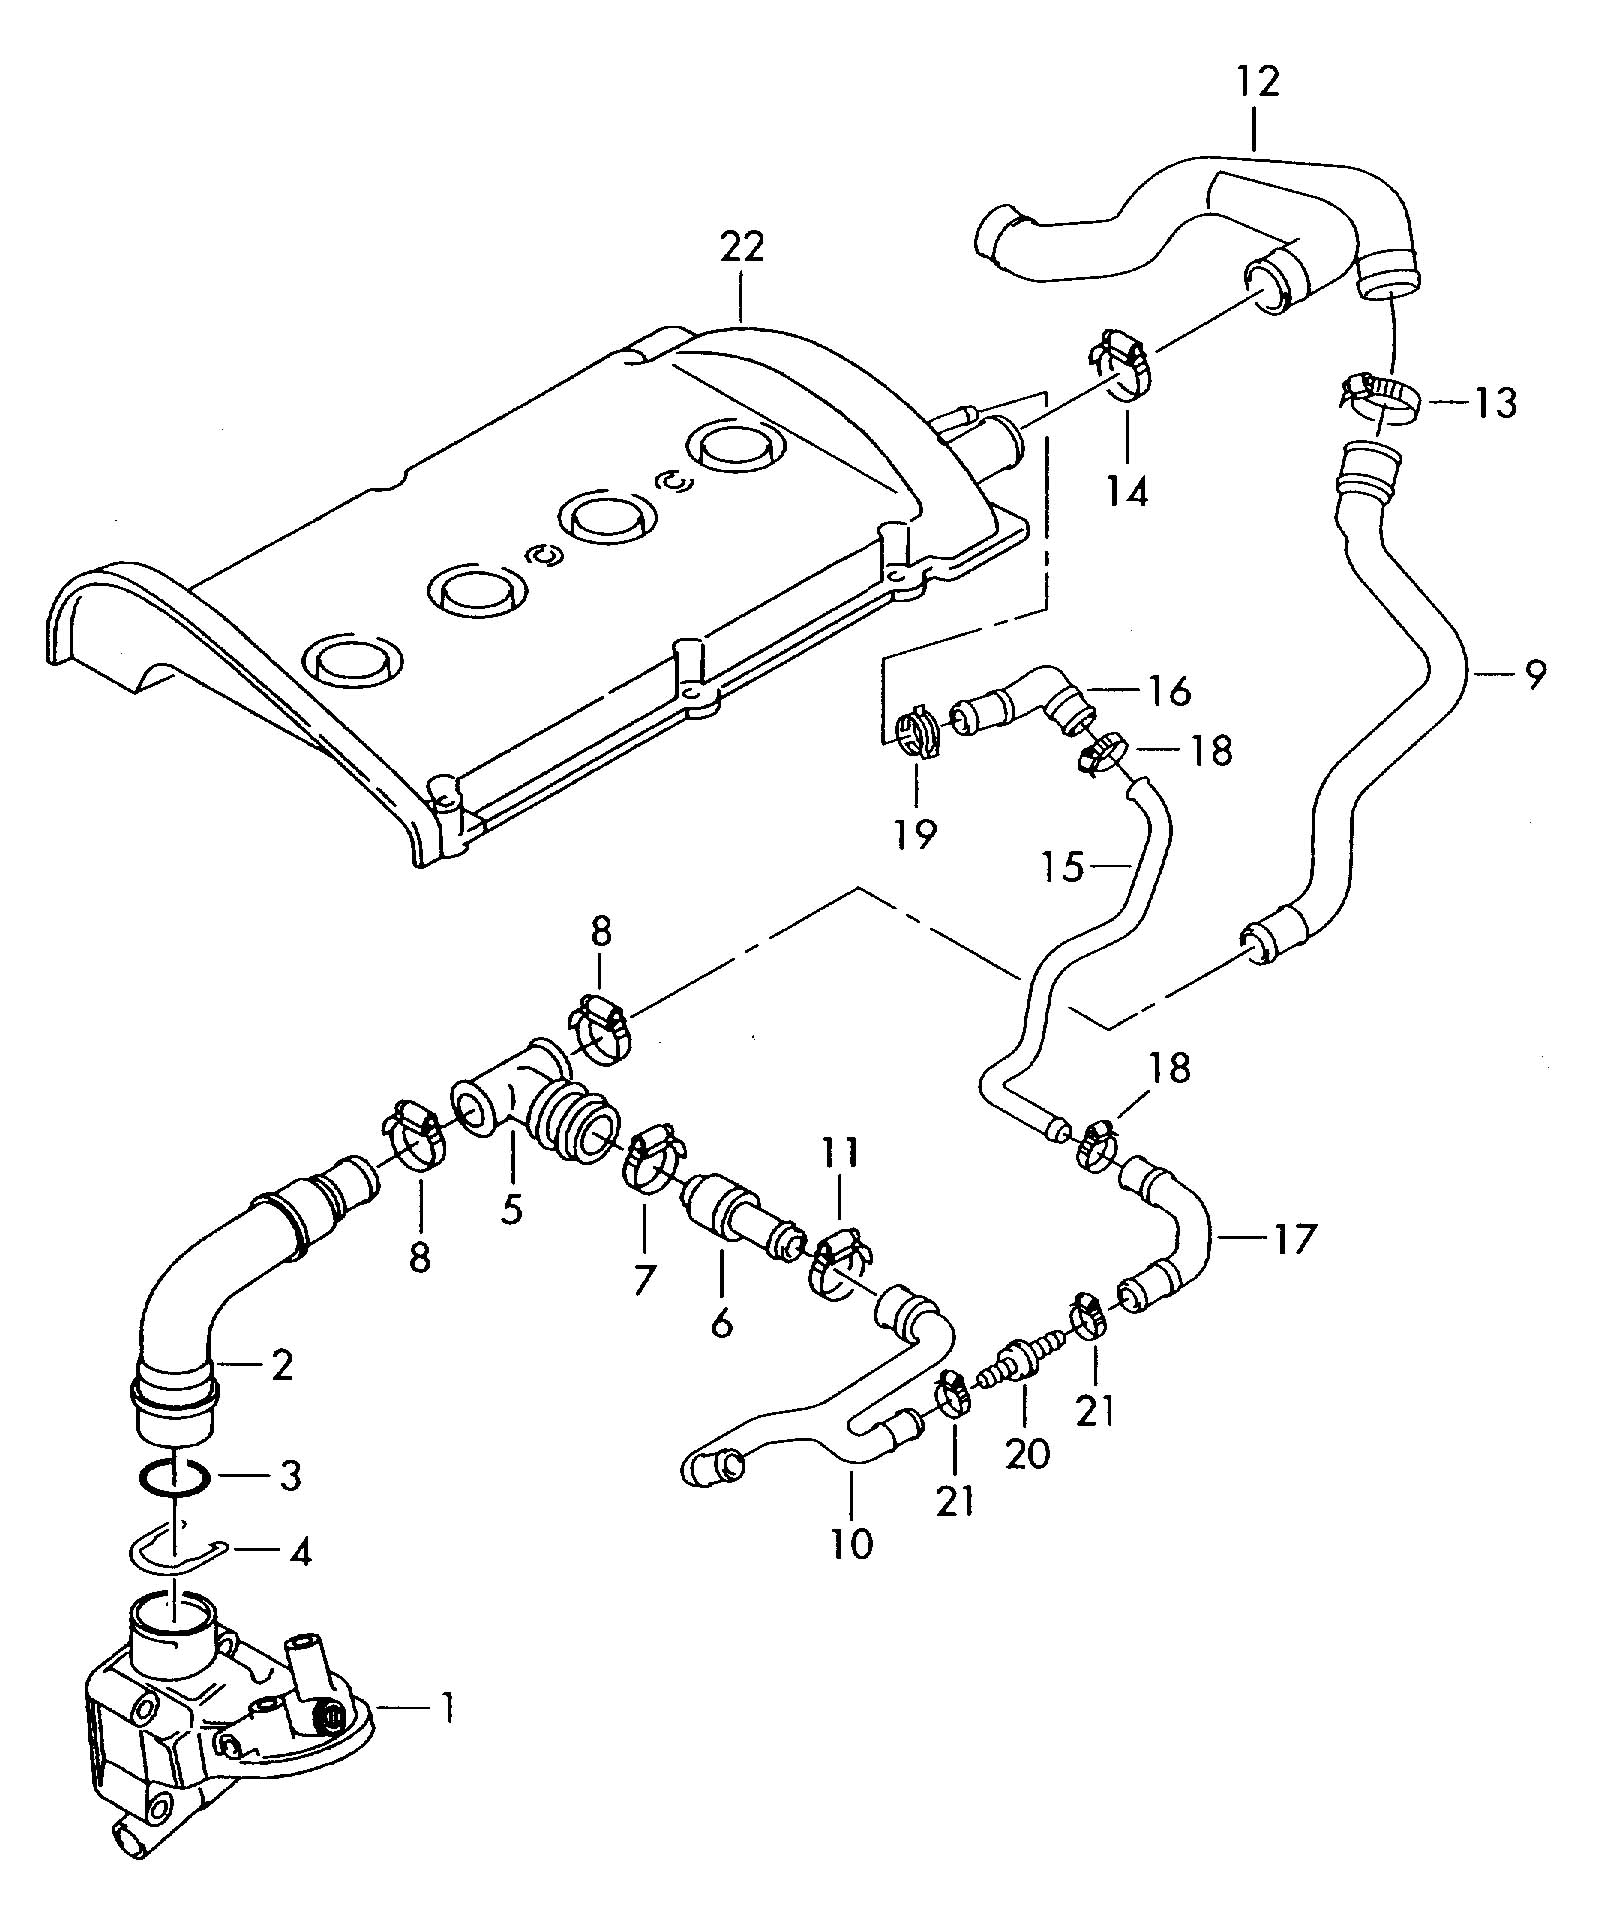 Pictures of Vw Passat Vacuum Hose Diagram